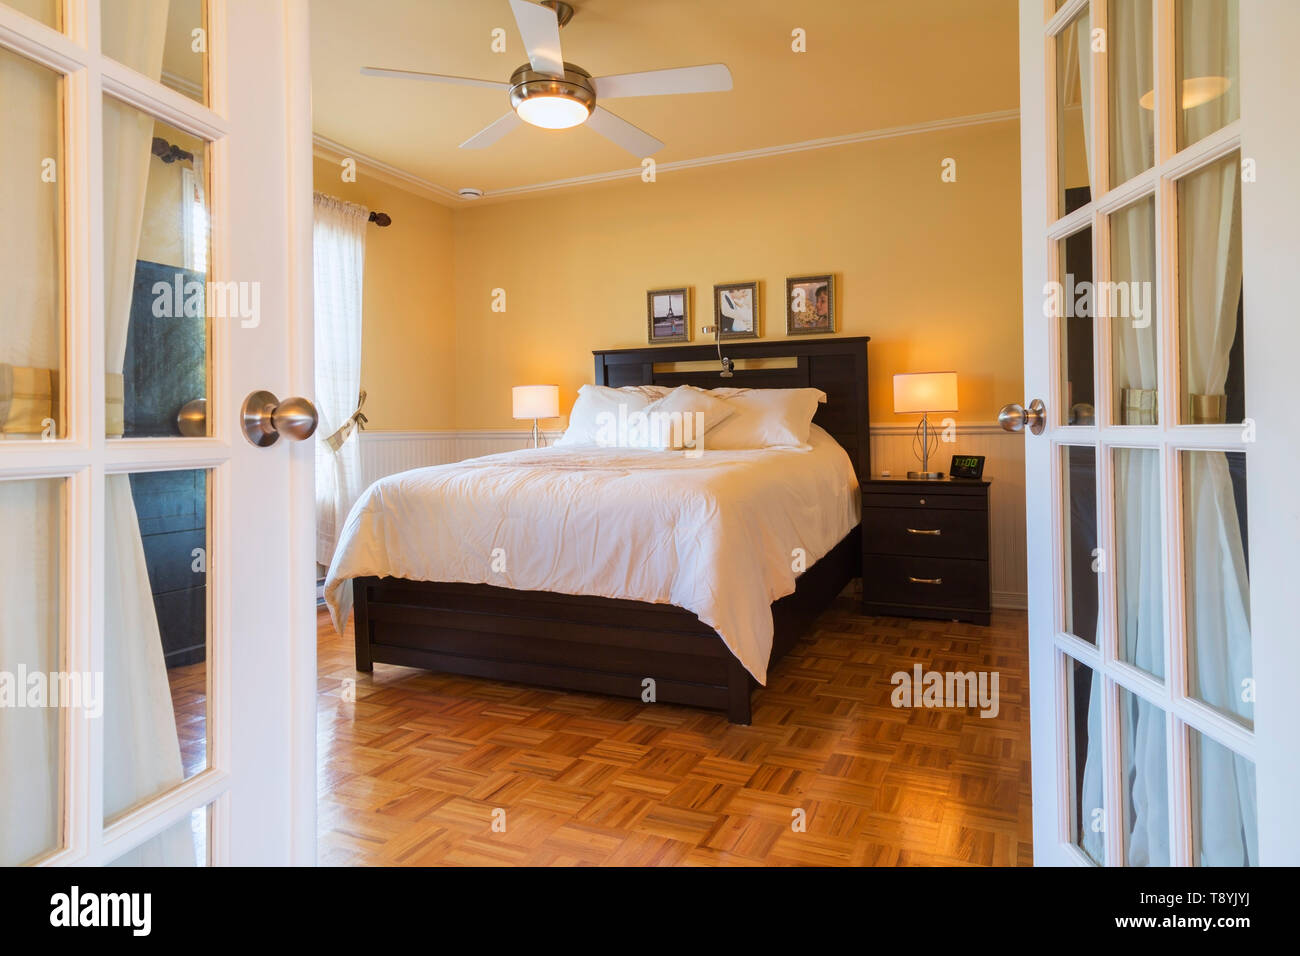 Queen-size bed with wooden headboard, end table and opened ...